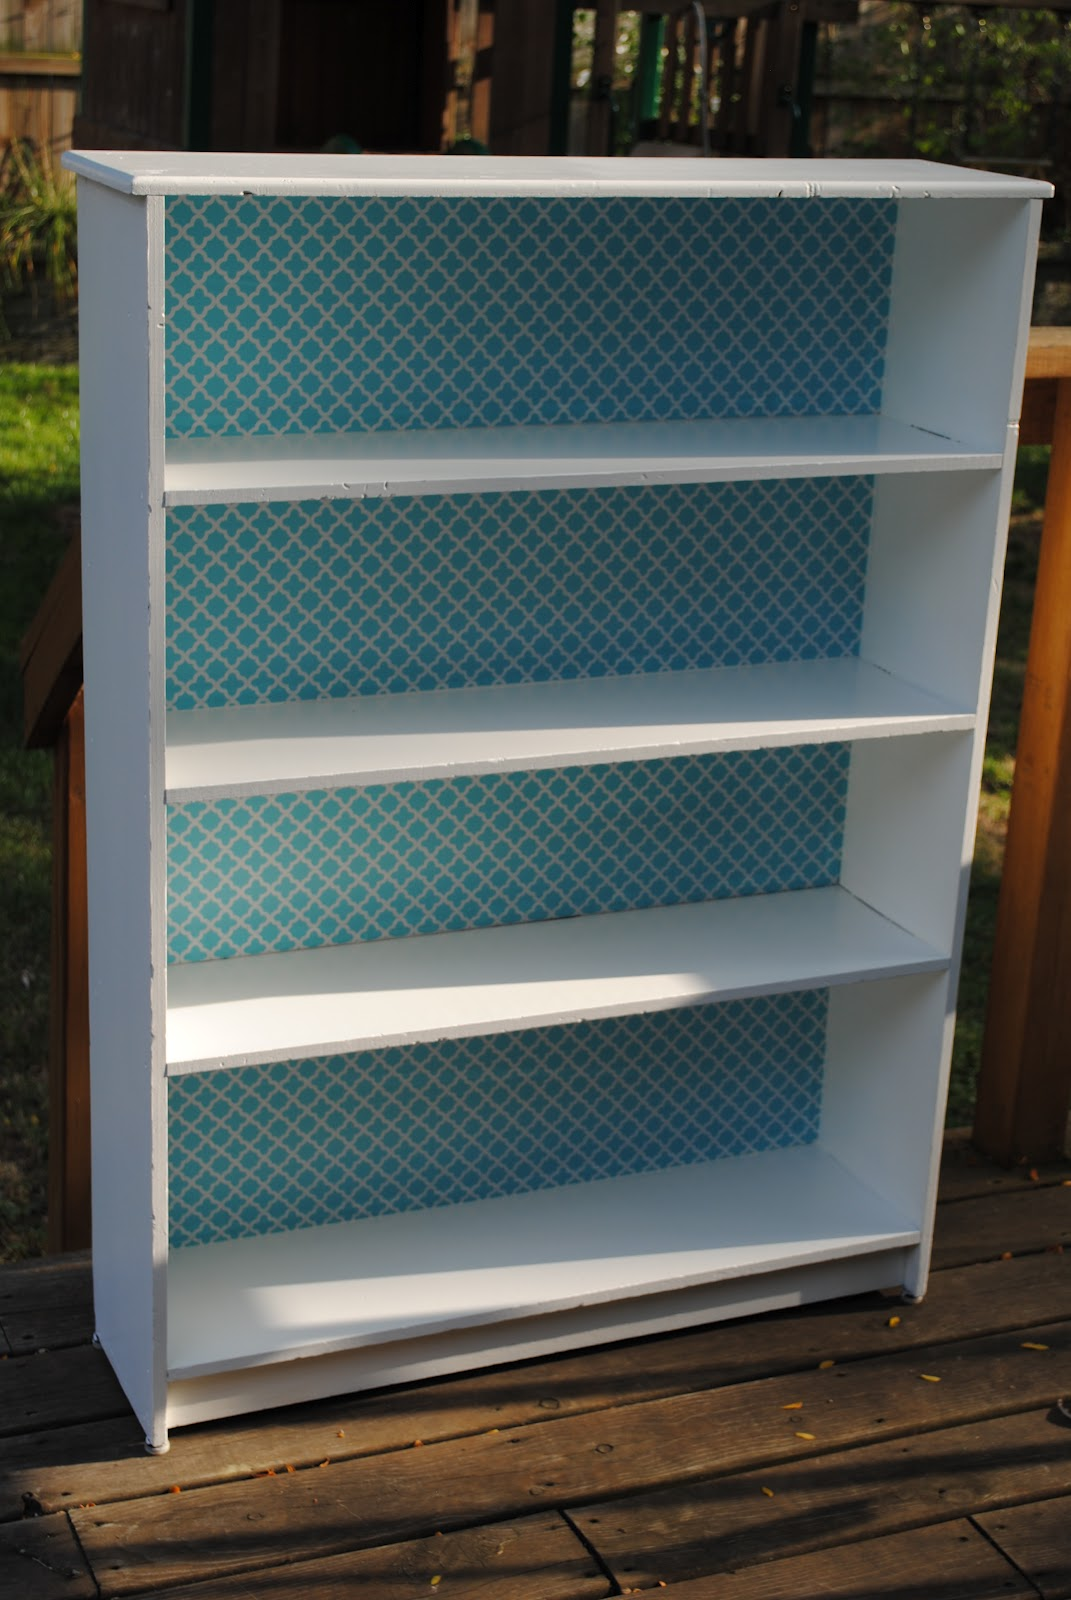 diddle dumpling: Before and After: Bookcase